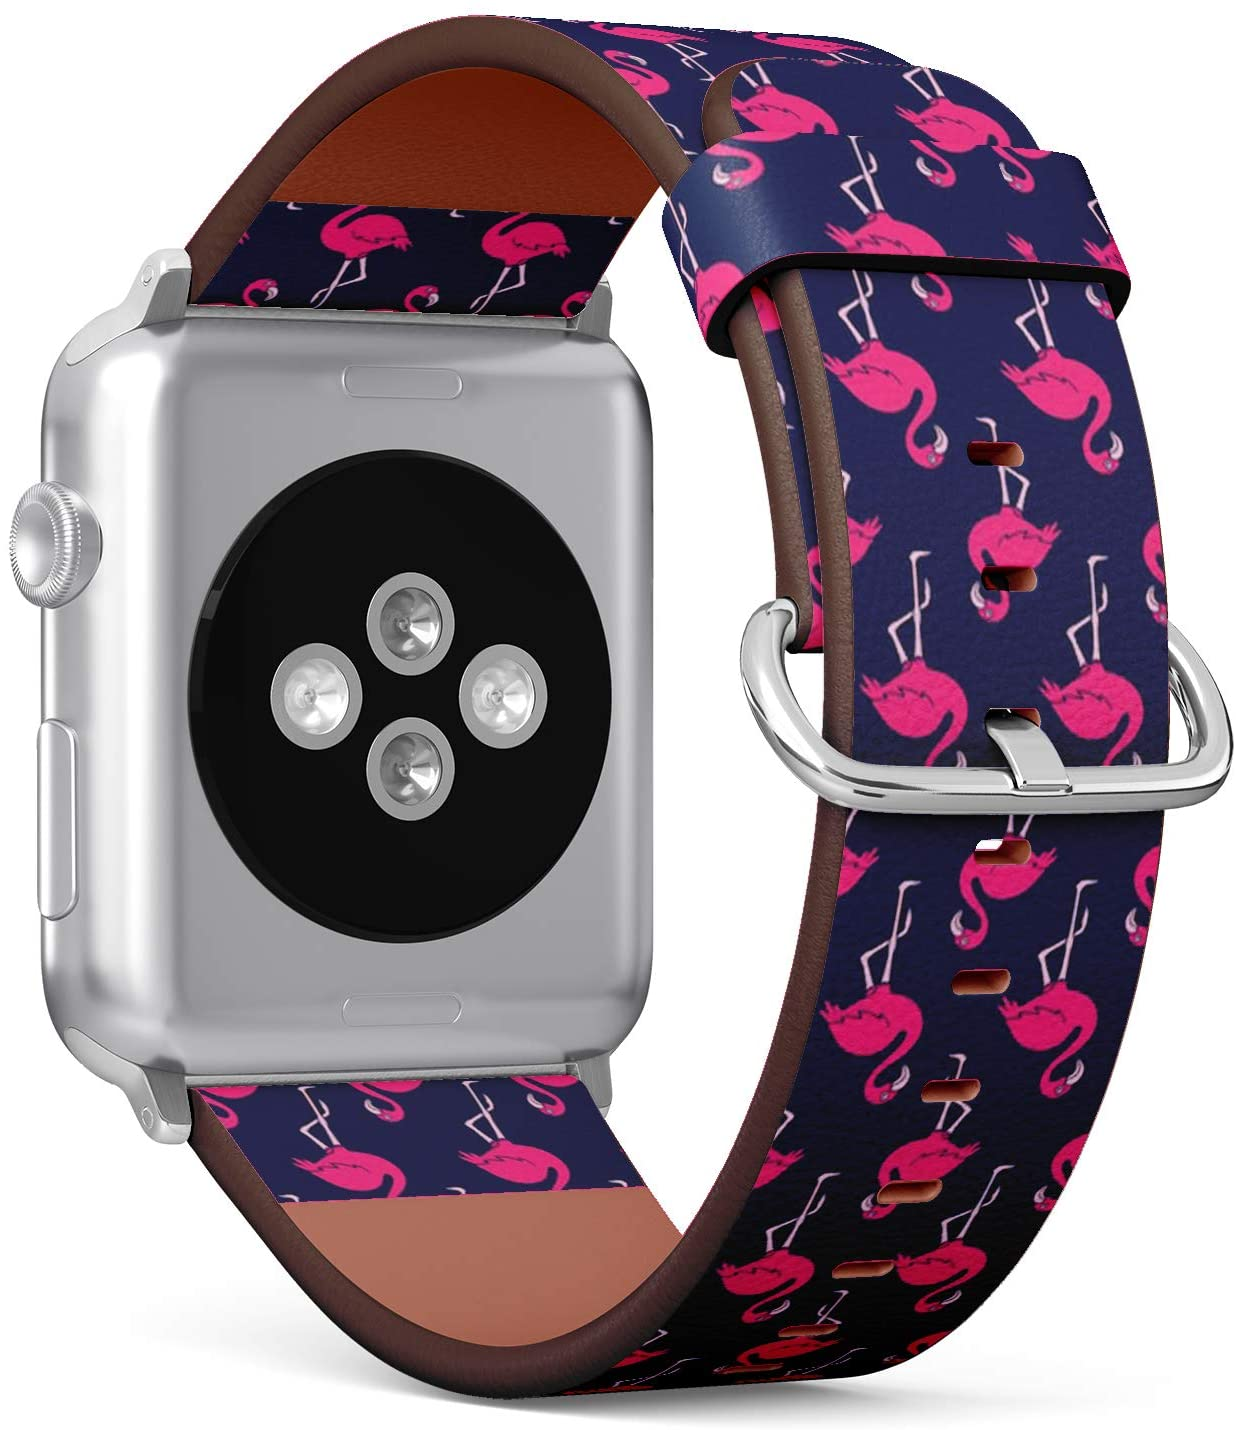 Compatible with Apple Watch Series 5, 4, 3, 2, 1 (Big Version 42/44 mm) Leather Wristband Bracelet Replacement Accessory Band + Adapters - Pink Flamingo